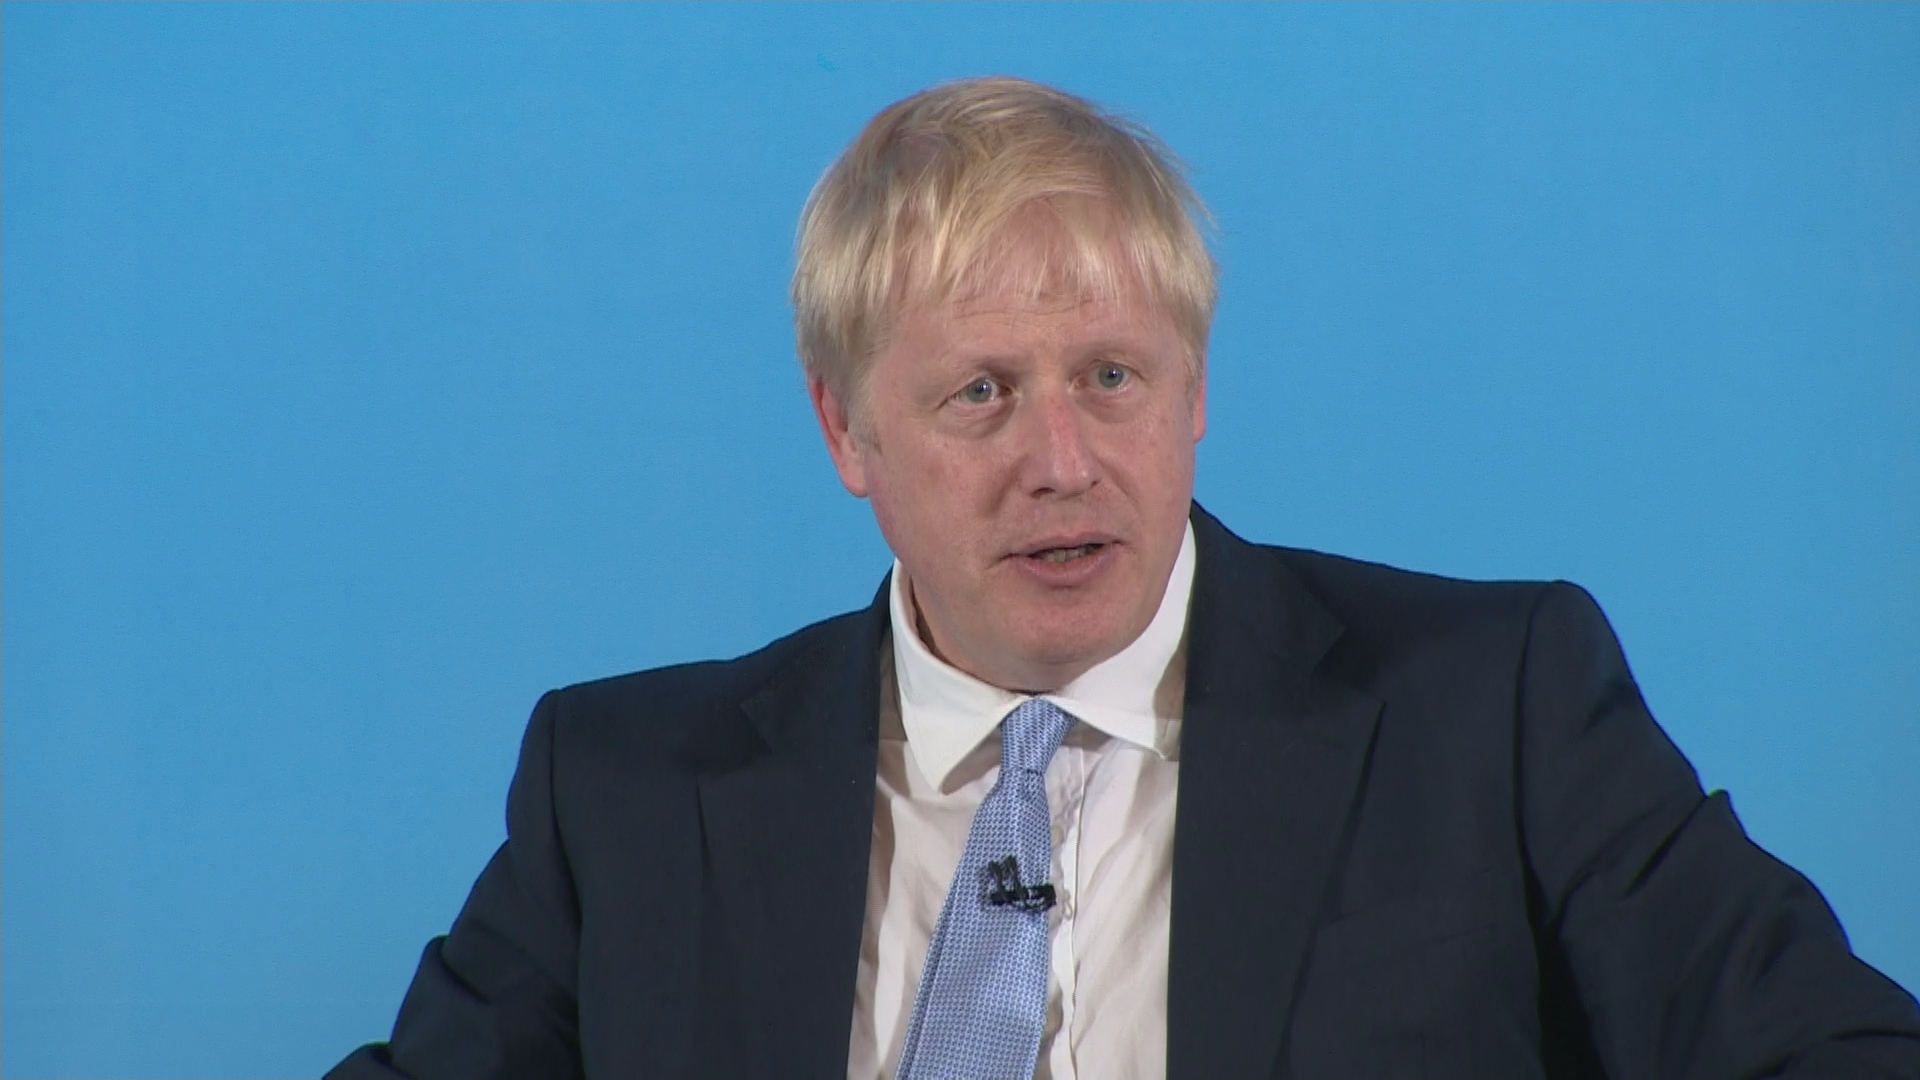 'Complete Hysteria': Boris Johnson Rejects Claim He Is A Right-Wing Populist